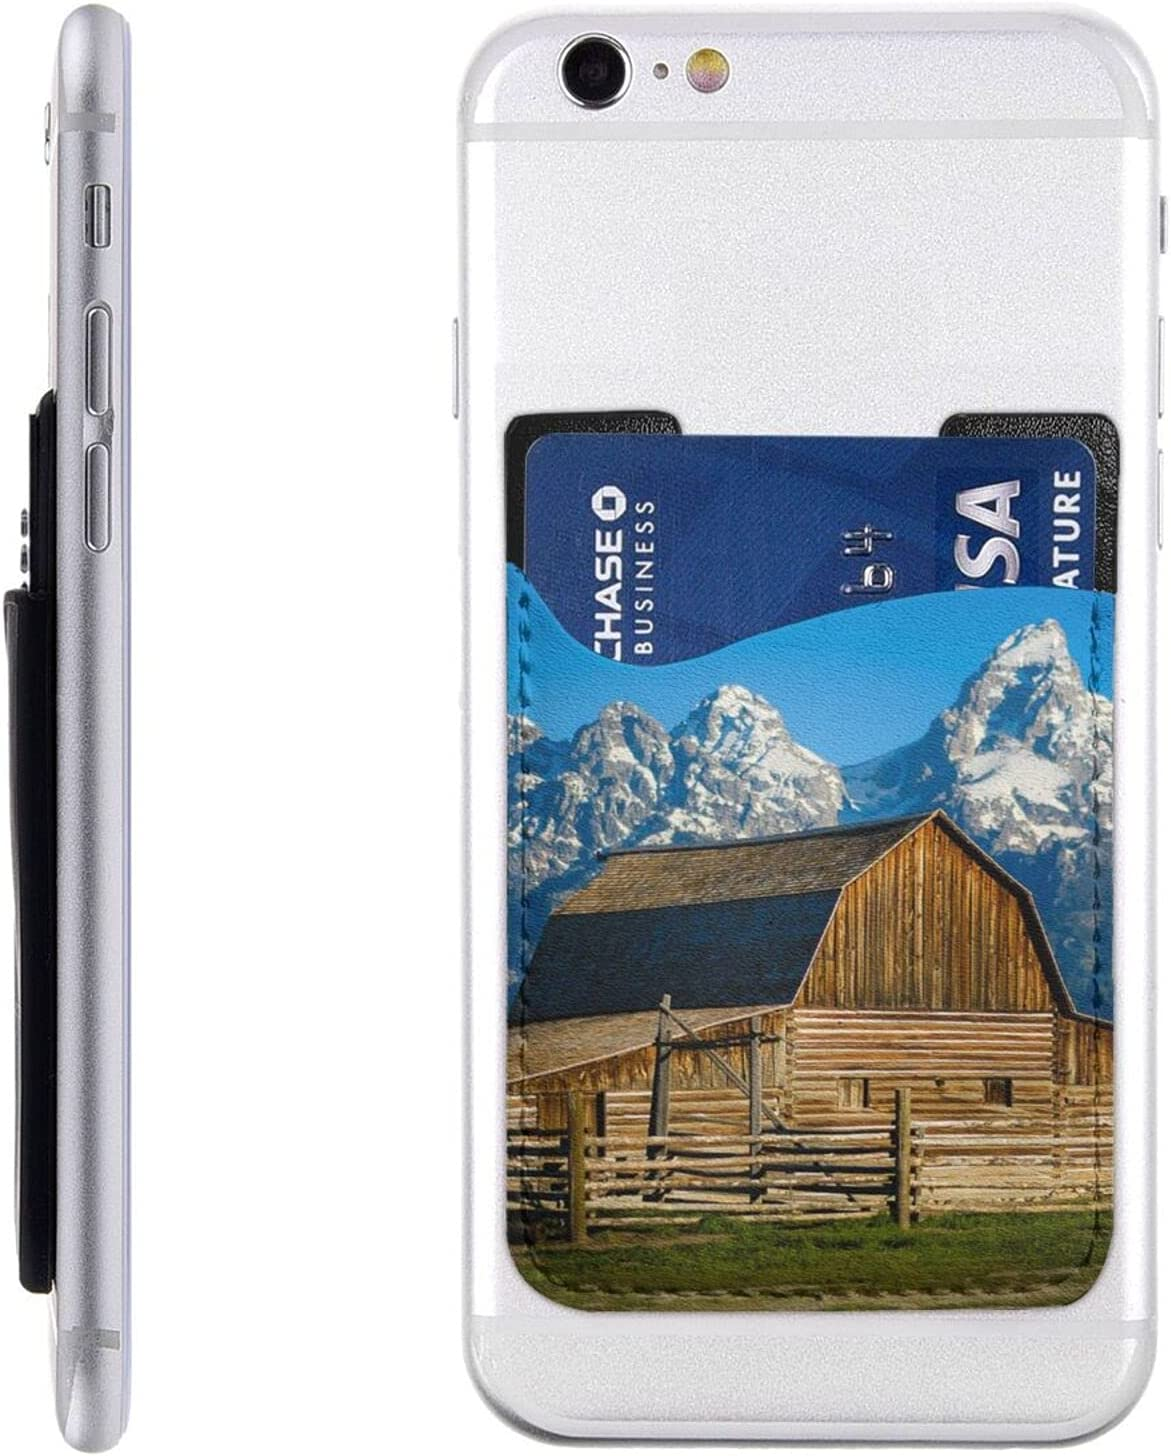 Park Phone Card Holder Cheap super special price Cell Topics on TV Sleeve Mo On Stick Wallet